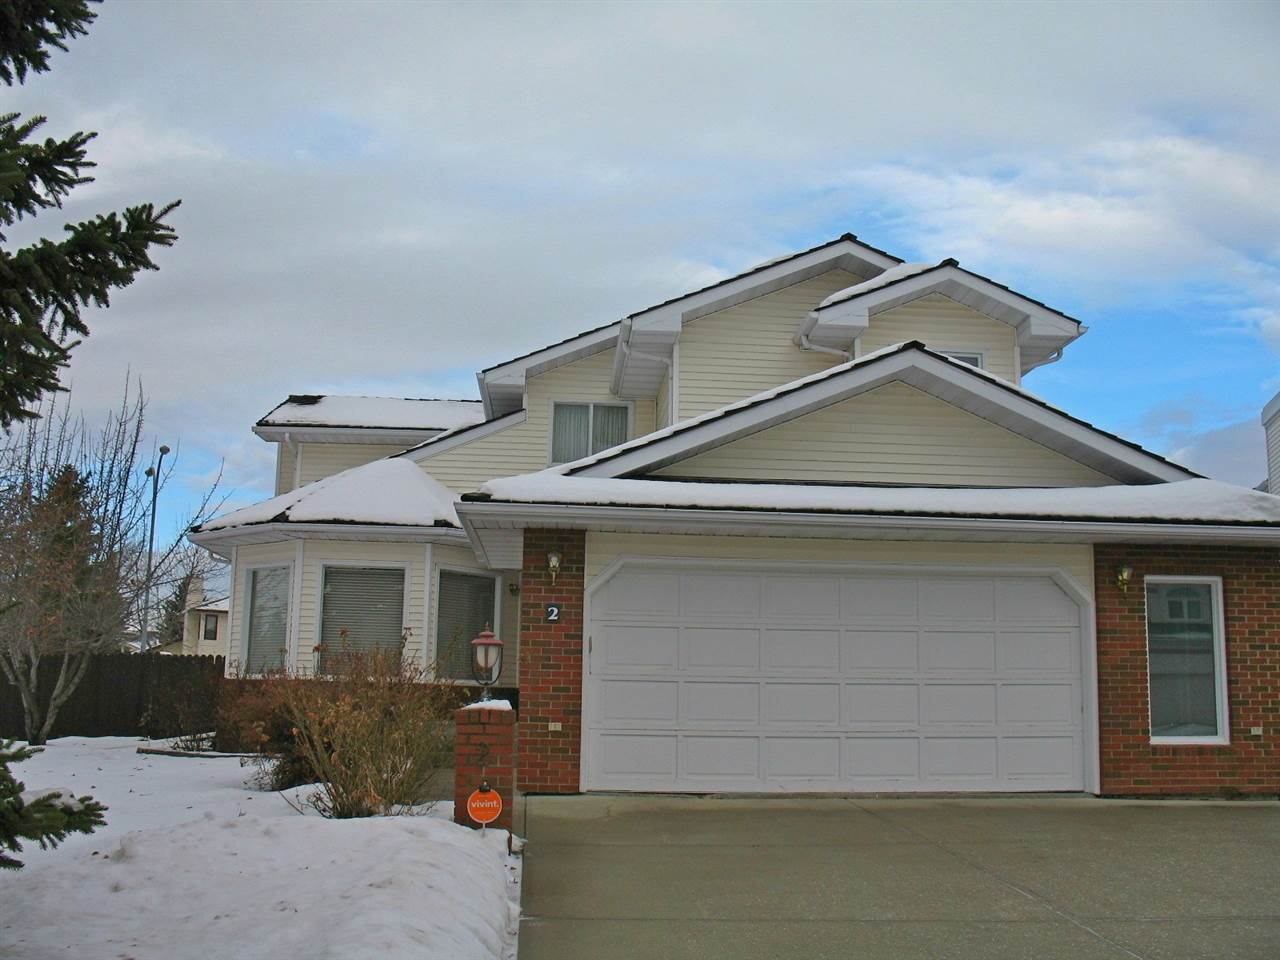 Main Photo: 2 NEWPORT Drive: Sherwood Park House for sale : MLS® # E4085418